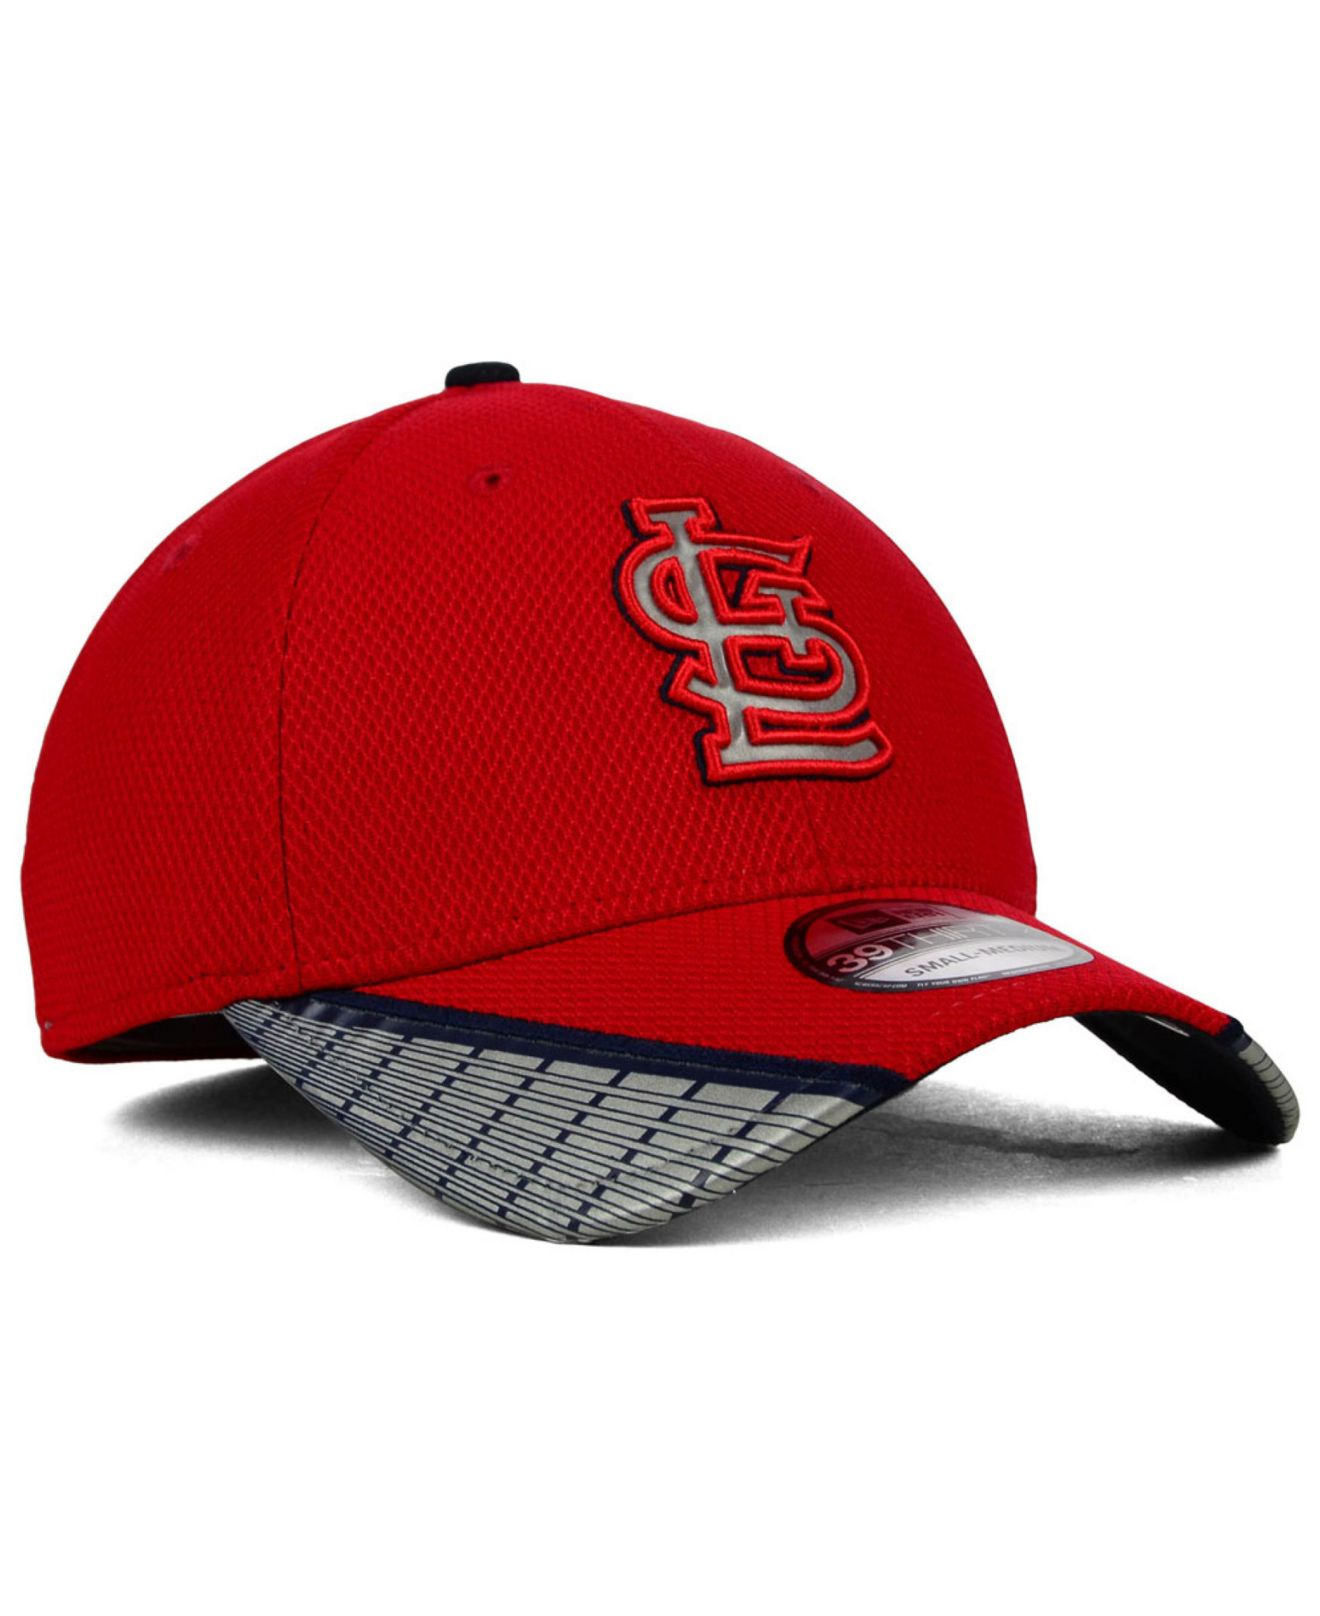 competitive price 3351b 44434 uk new era st. louis cardinals red mlb team classic game 39thirty flex hat  d5b90 54b30  best price gallery. previously sold at macys mens baseball caps  ...